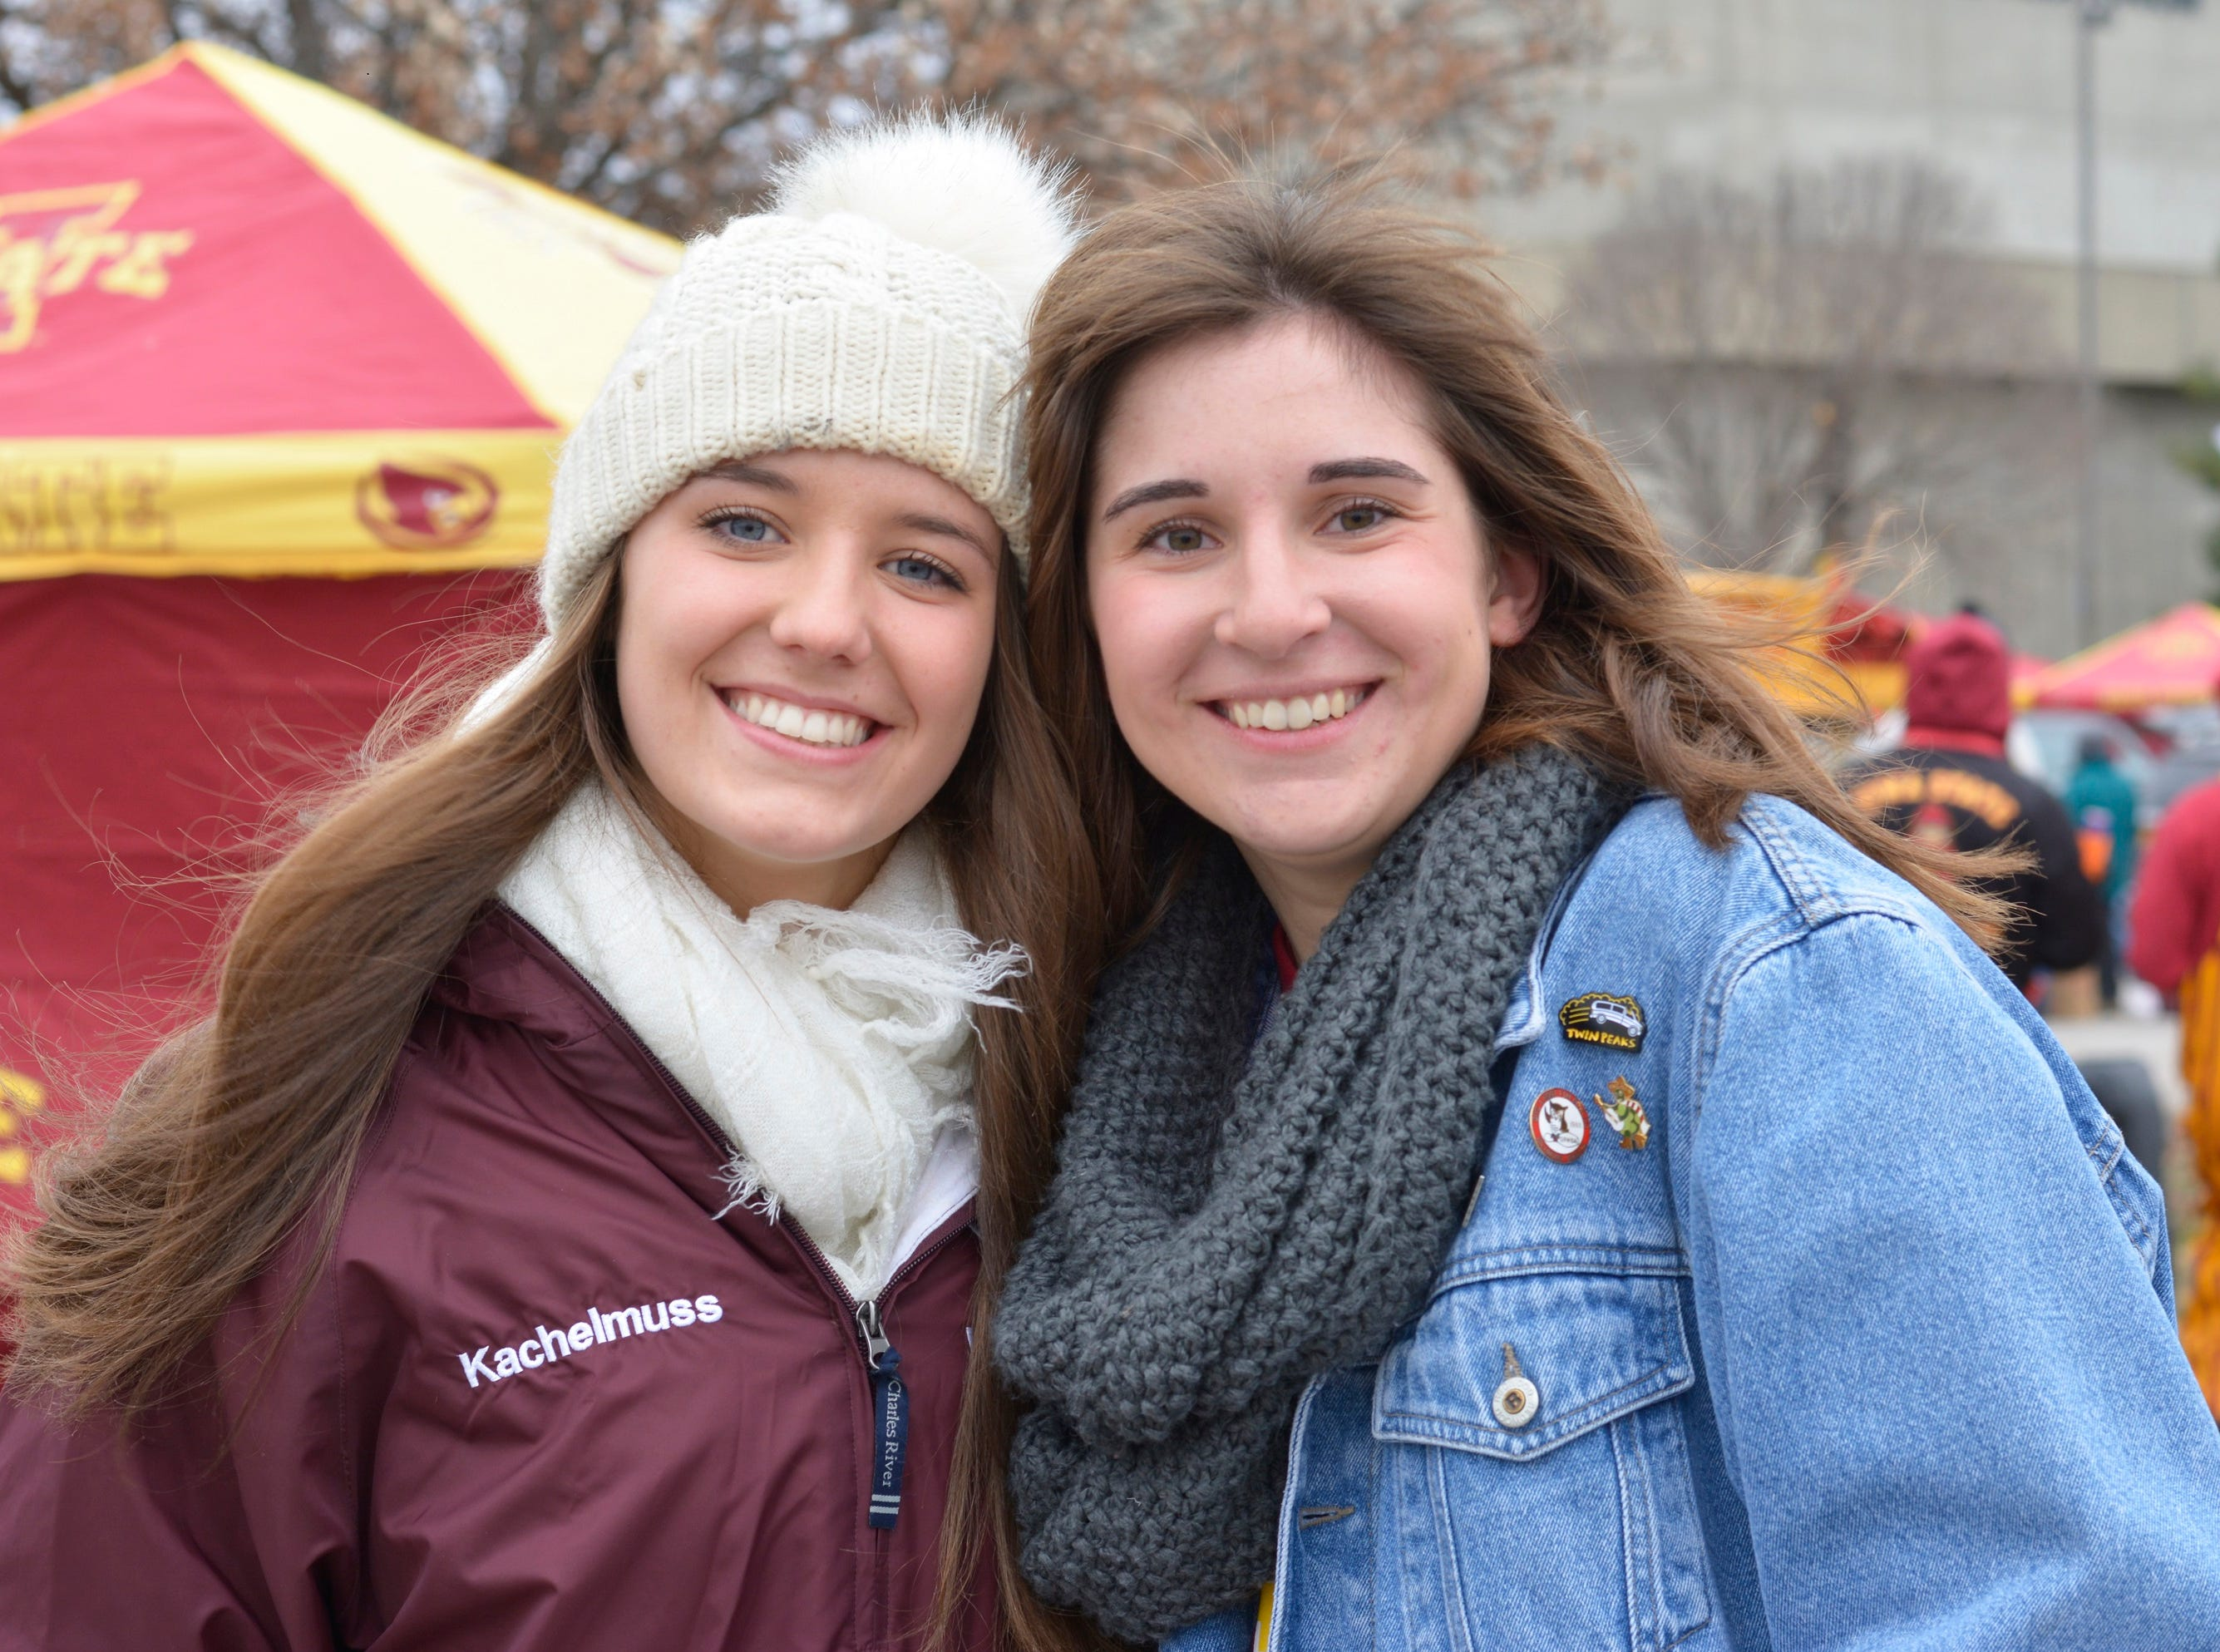 Maddy Kachelmuss (left) and Natalie Dombrowski (right) before the Iowa State University football game against Baylor in Ames on Nov. 10.